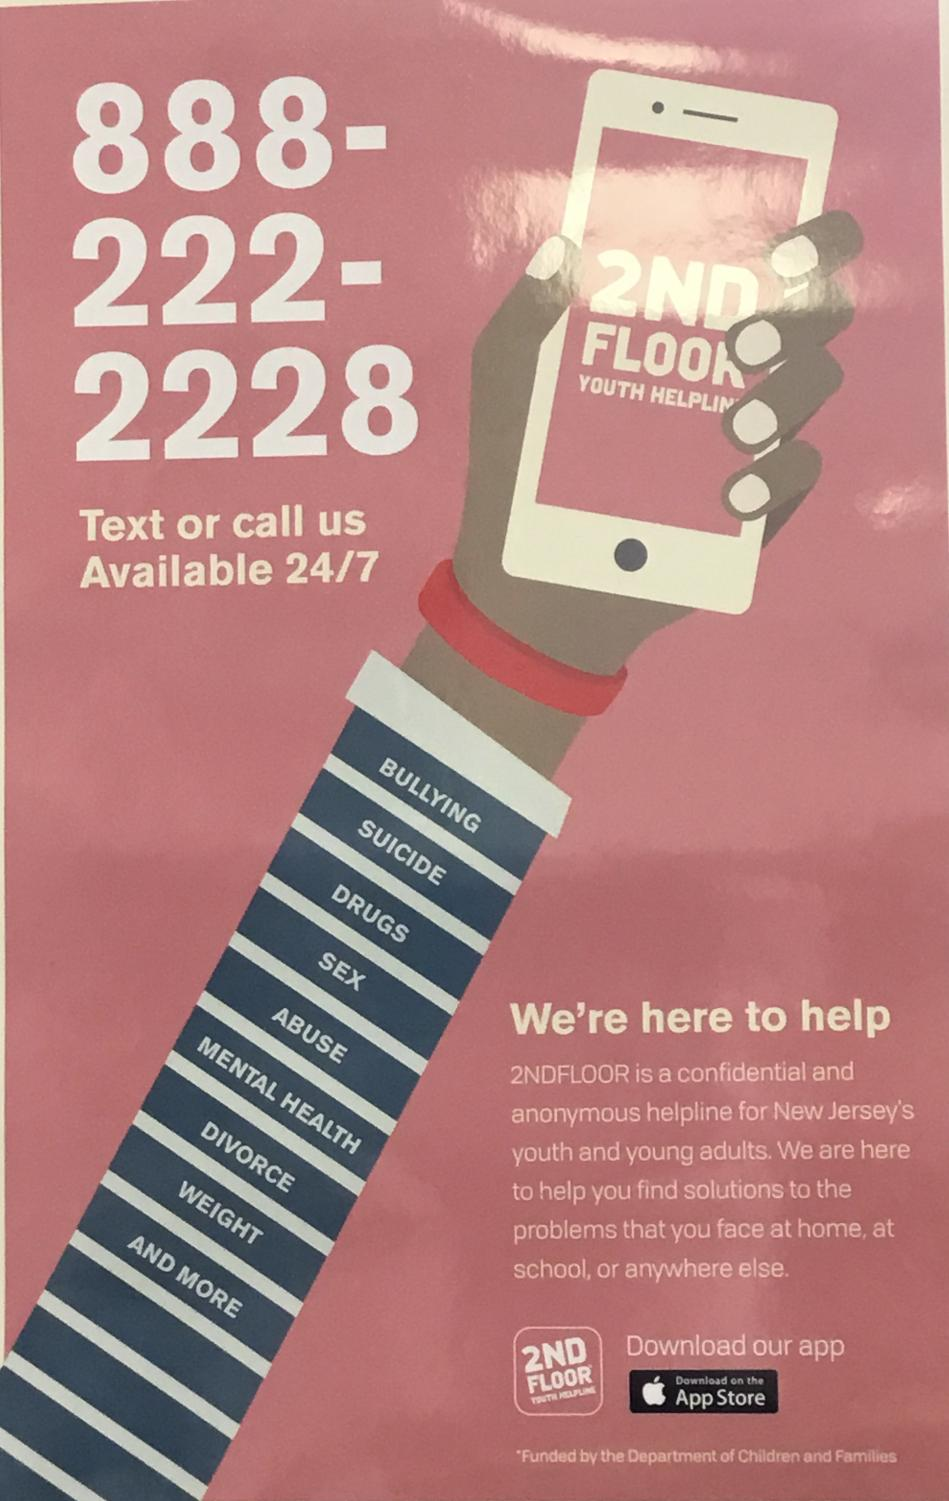 Poster advertising the 2nd Floor Youth Helpline